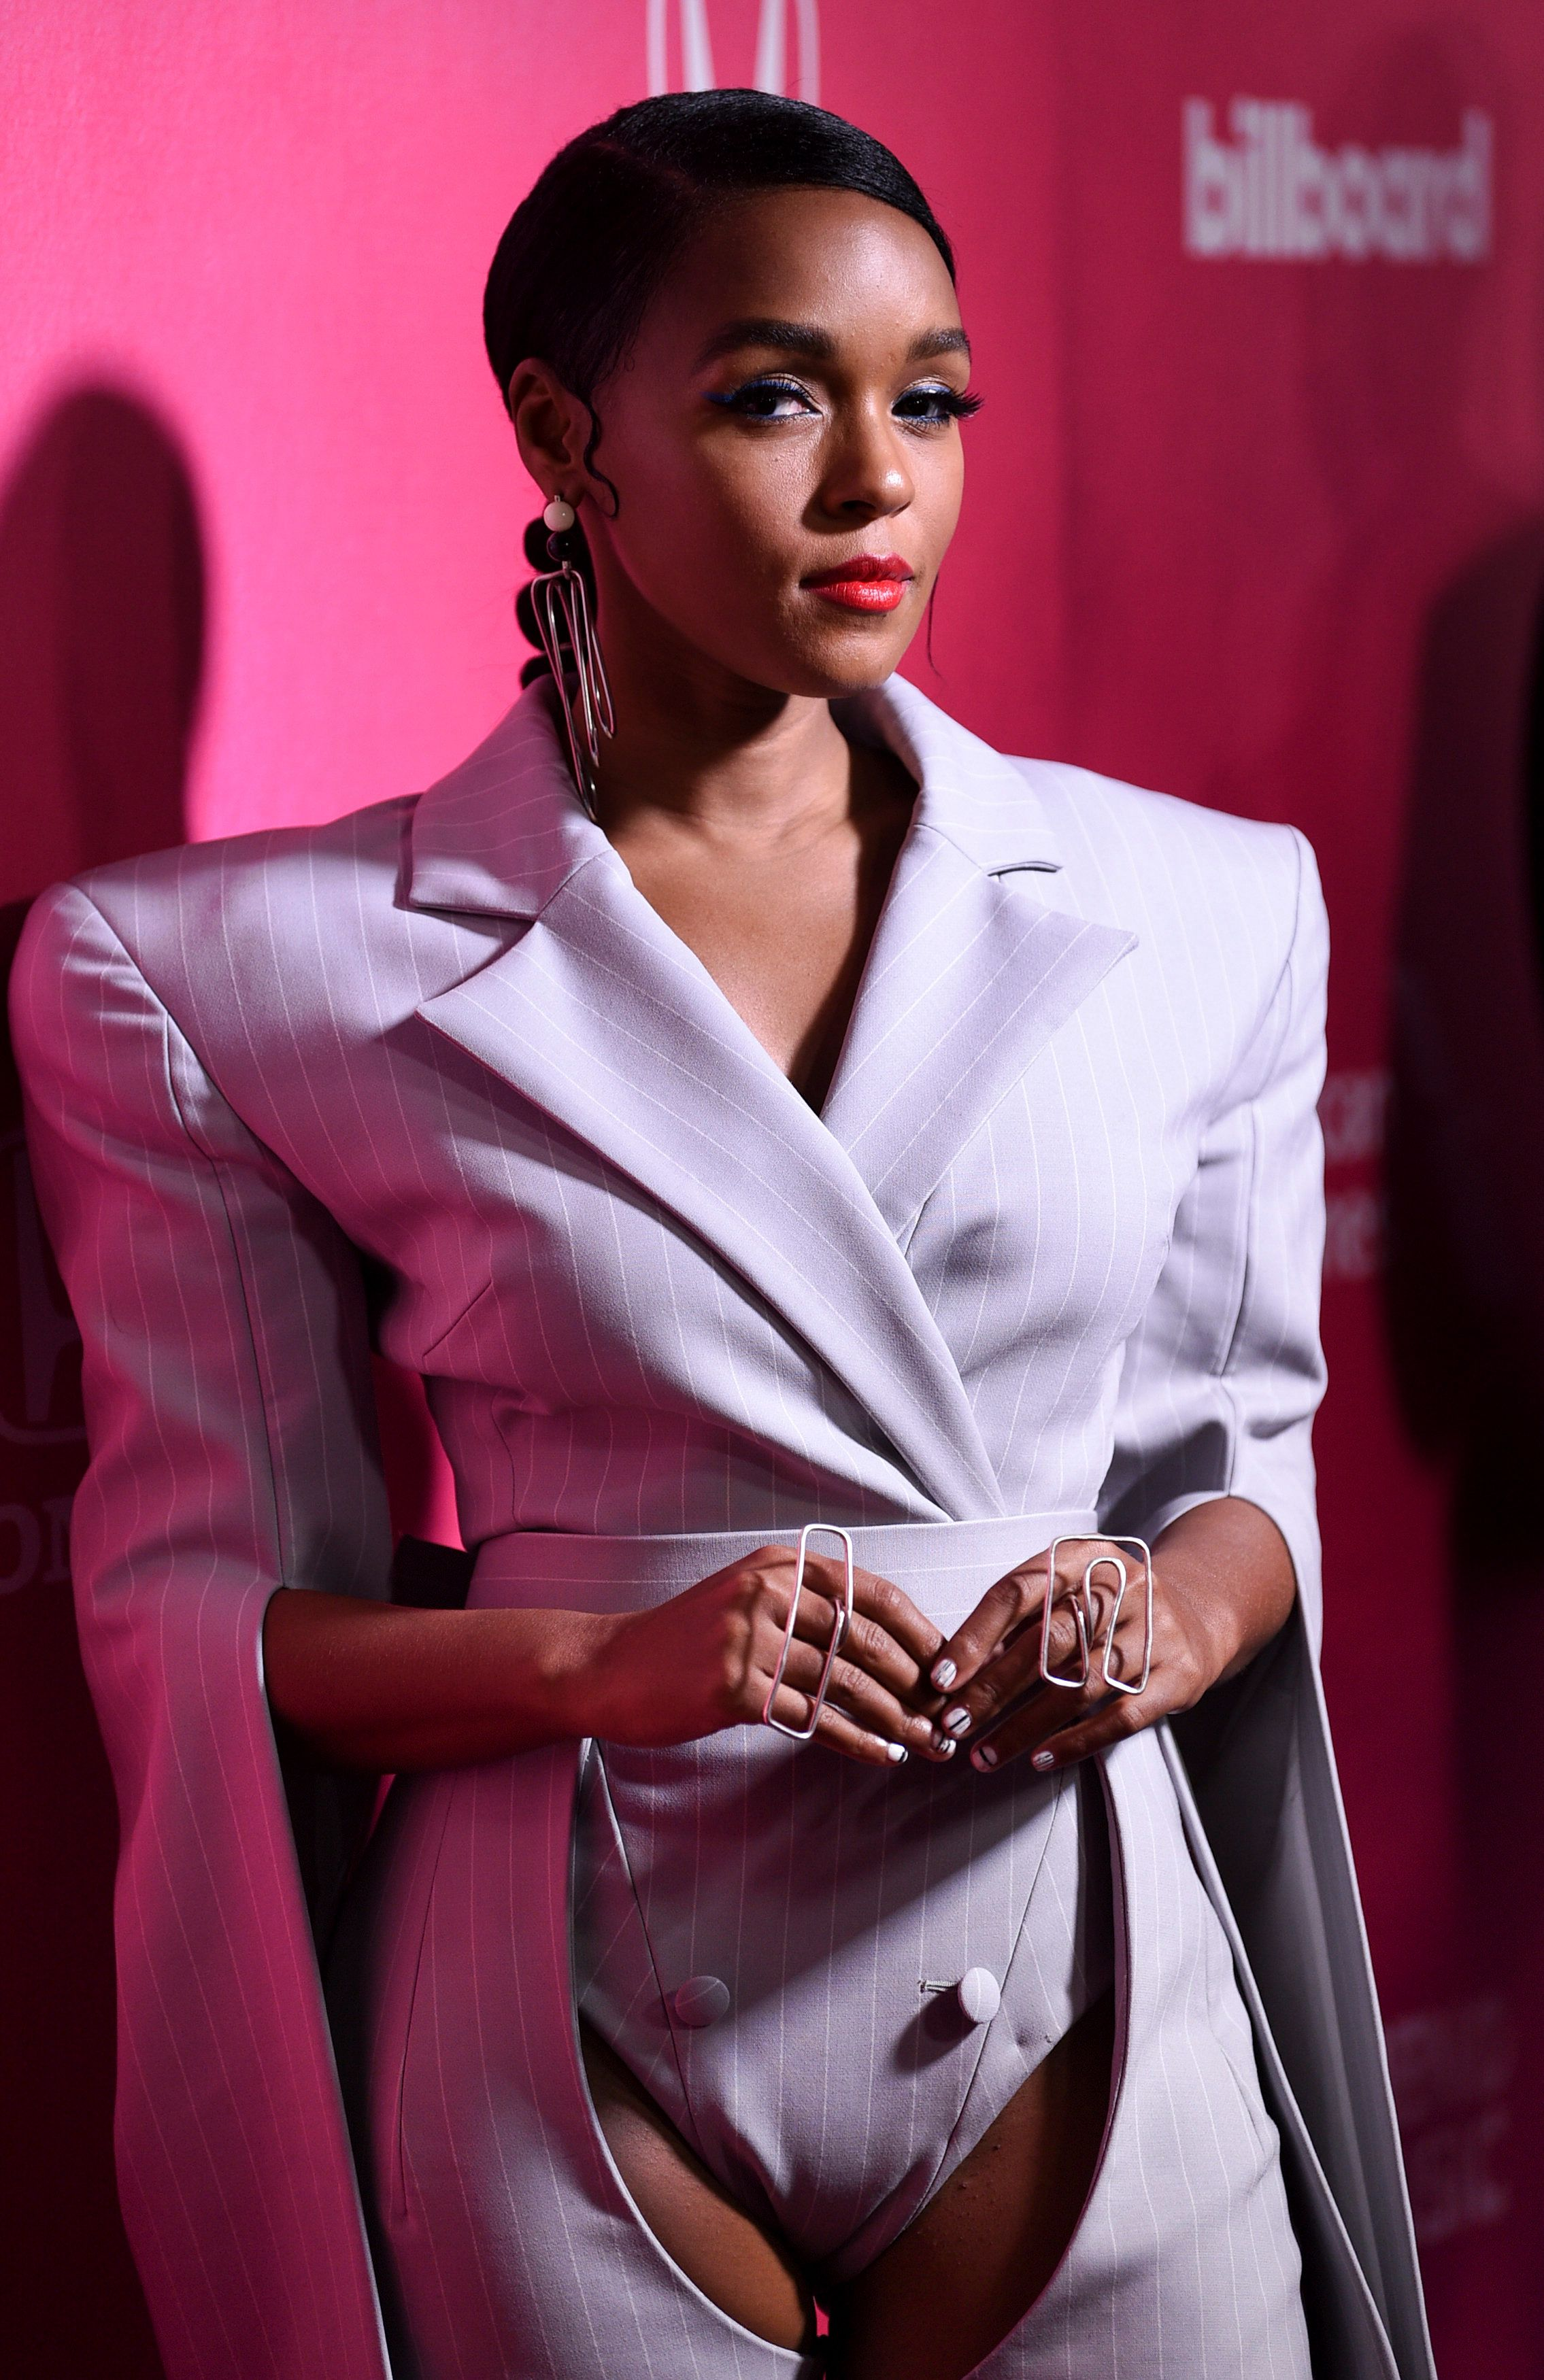 Singer-songwriter Janelle Monae attends the 13th annual Billboard Women in Music event at Pier 36 on Thursday, Dec. 6, 2018, in New York. (Photo by Evan Agostini/Invision/AP)